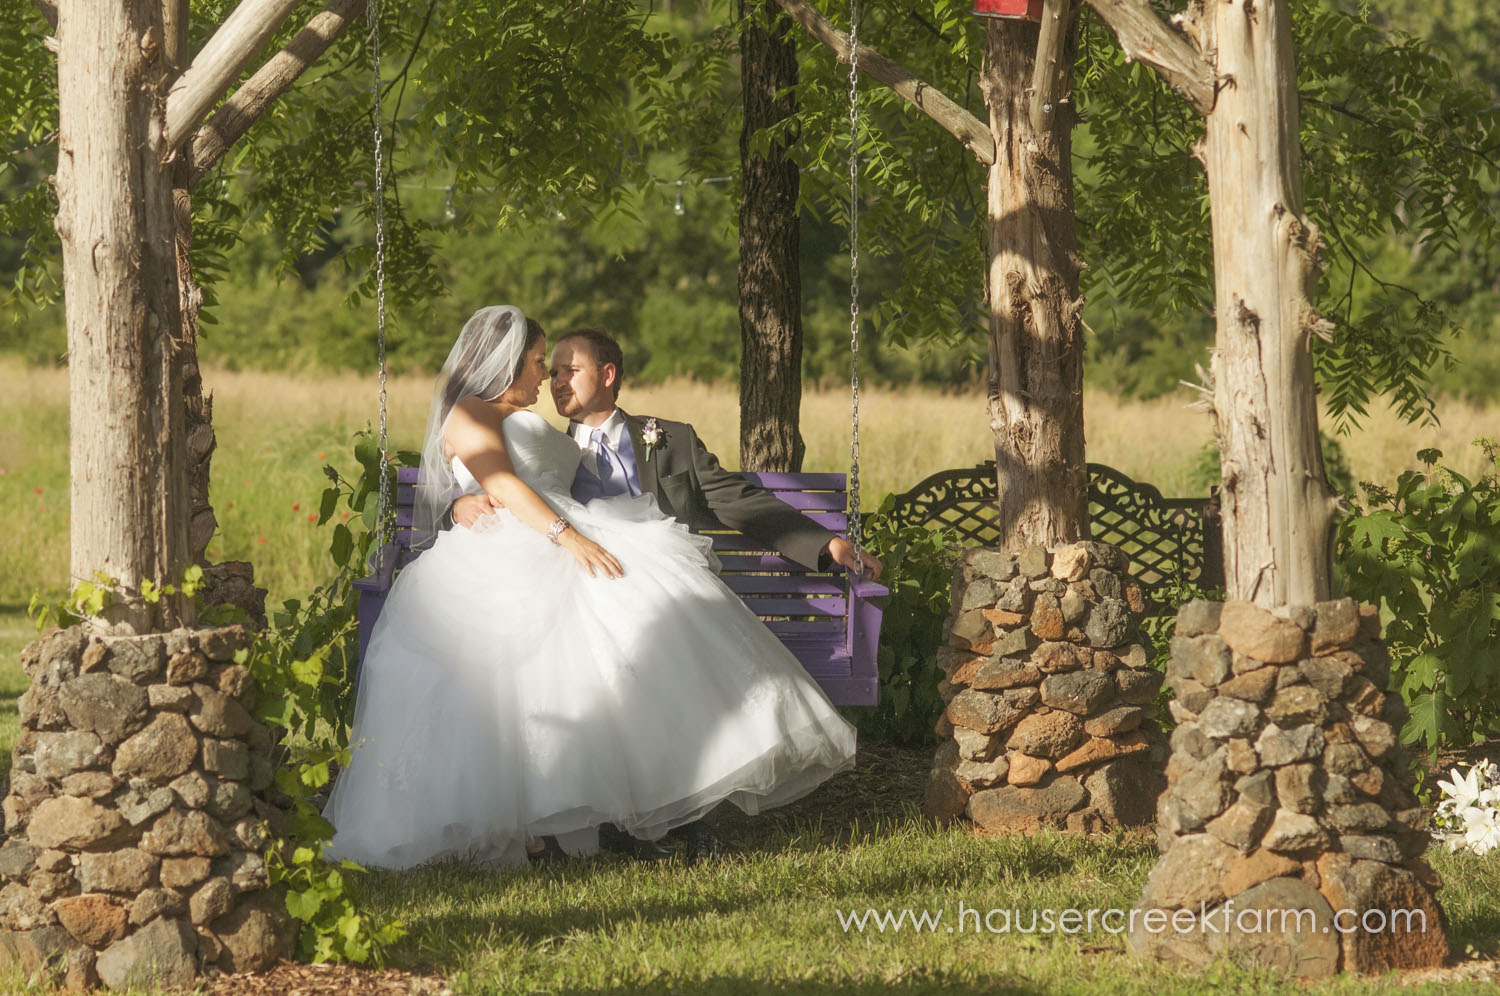 bride-and-groom-purple-swing-under-arbor-a-photo-by-ashley-0870.jpg